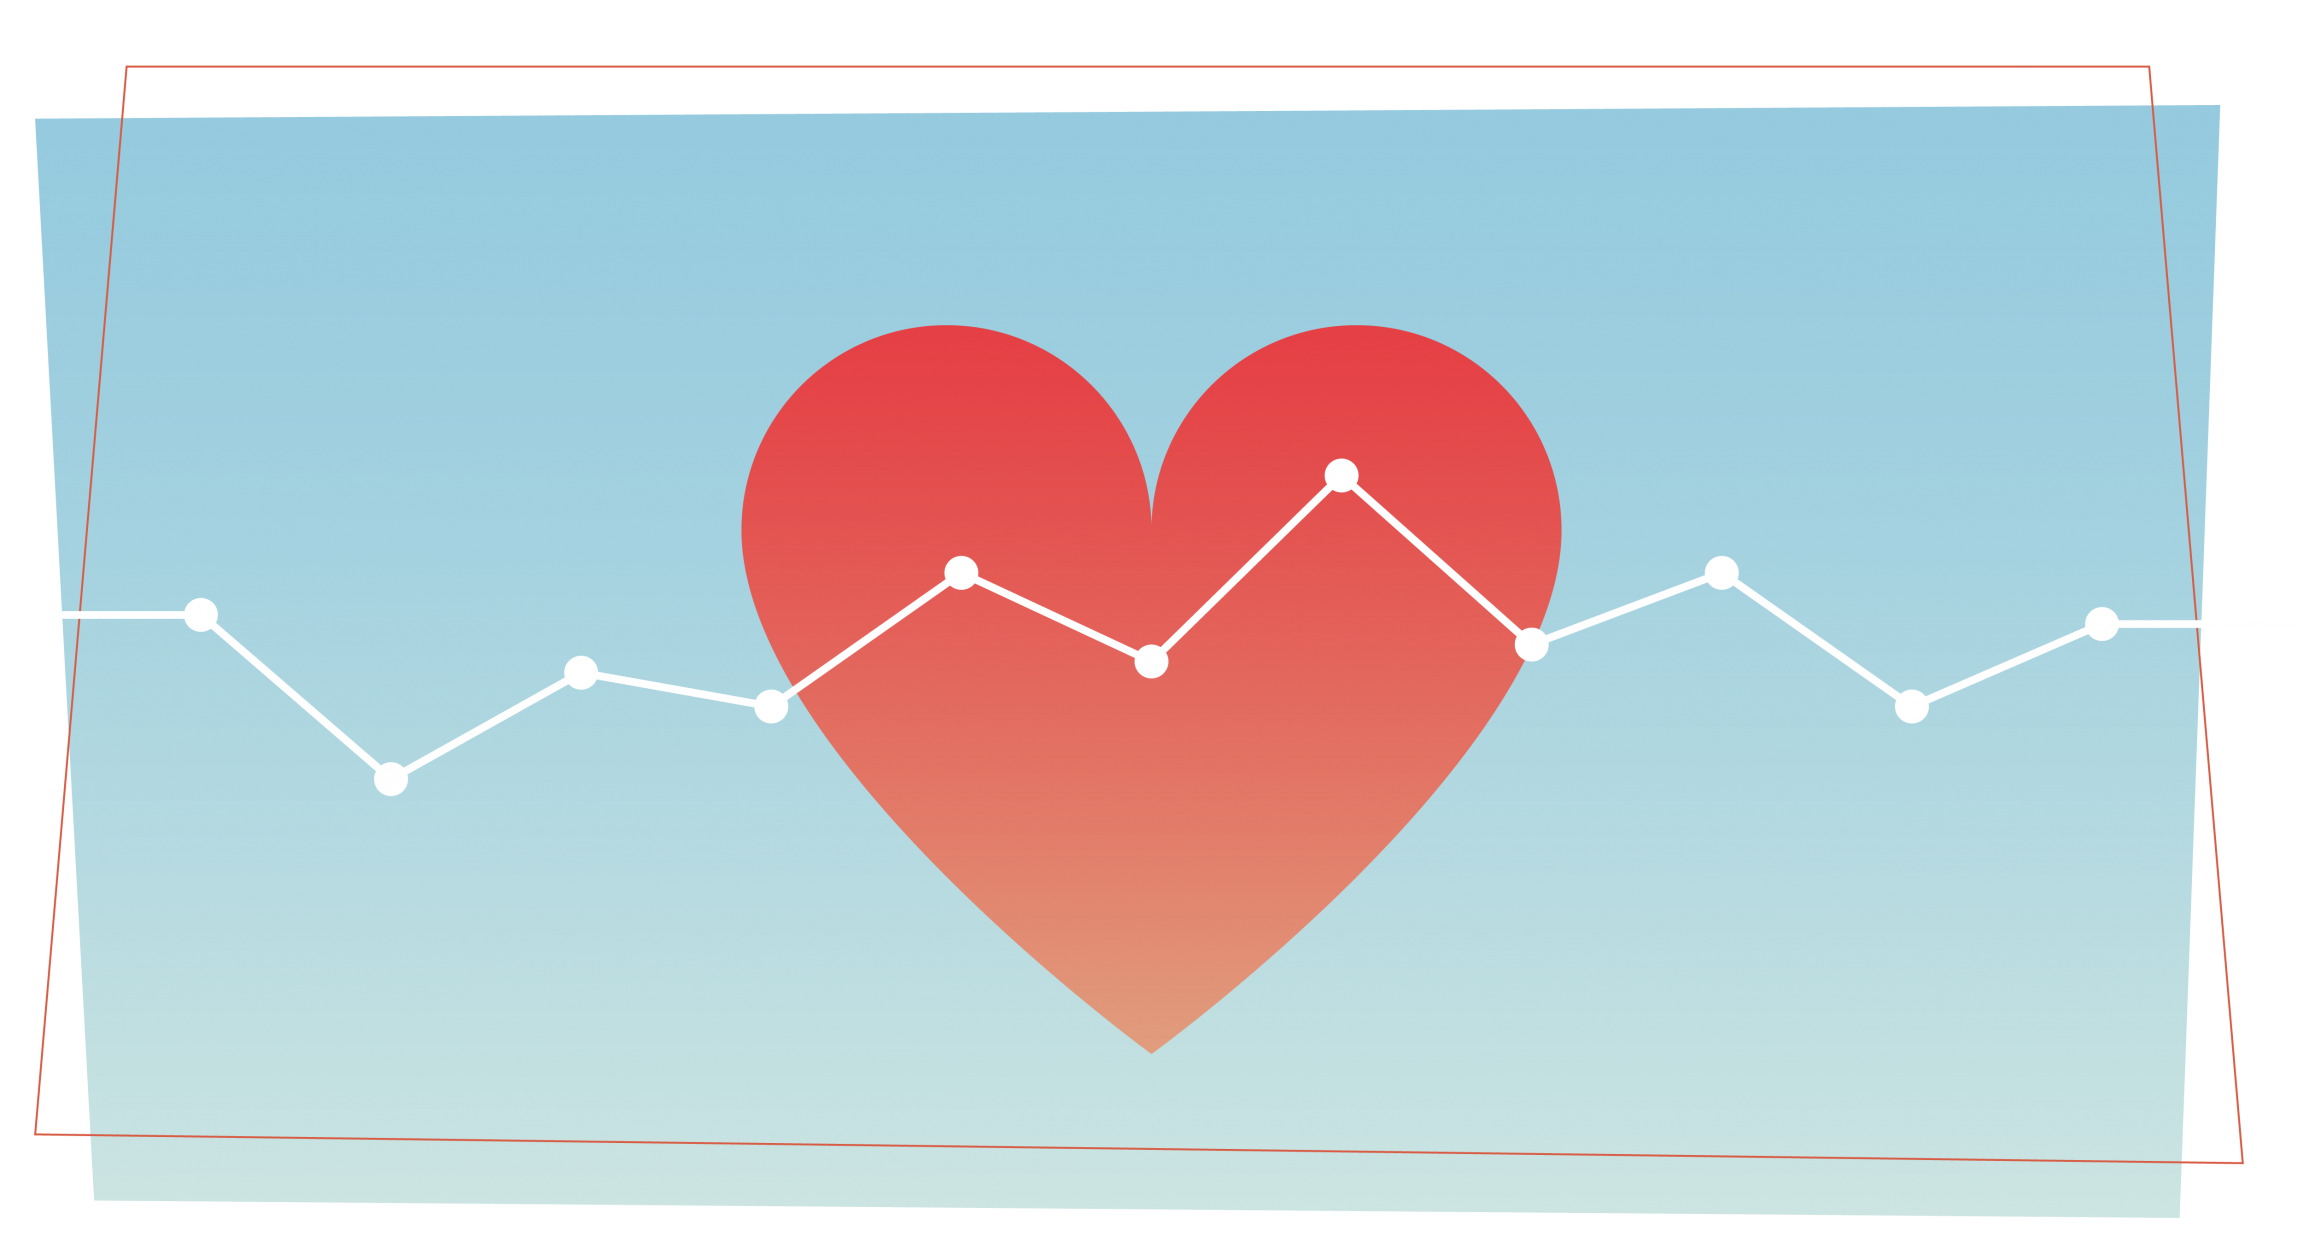 a heart icon with a line plot graph running across it